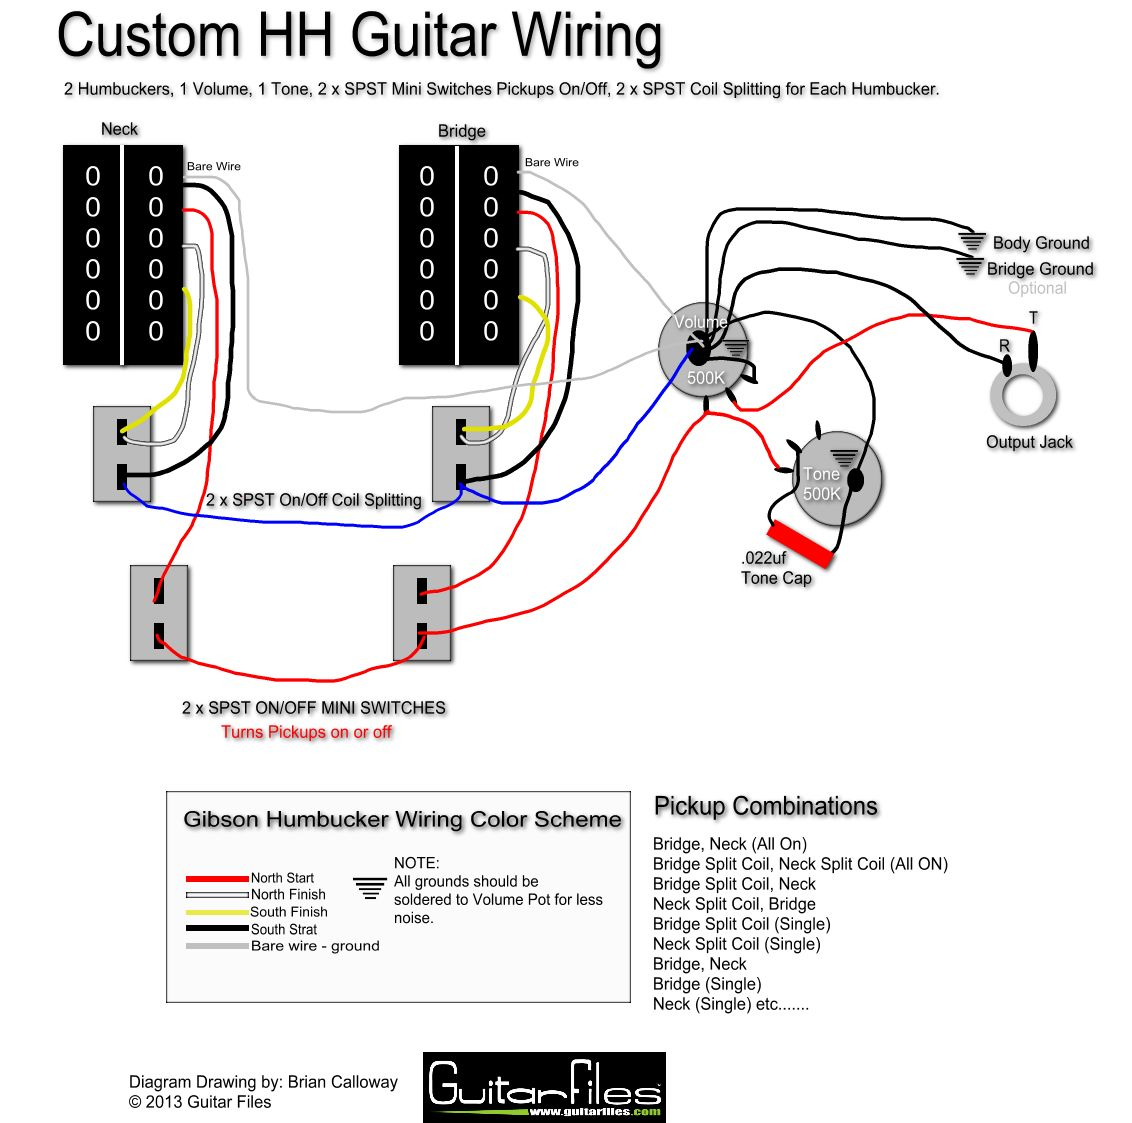 medium resolution of custom hh wiring diagram with spst coil splitting and spst switching rh pinterest com humbucker wiring diagram ibanez pickup wiring diagram